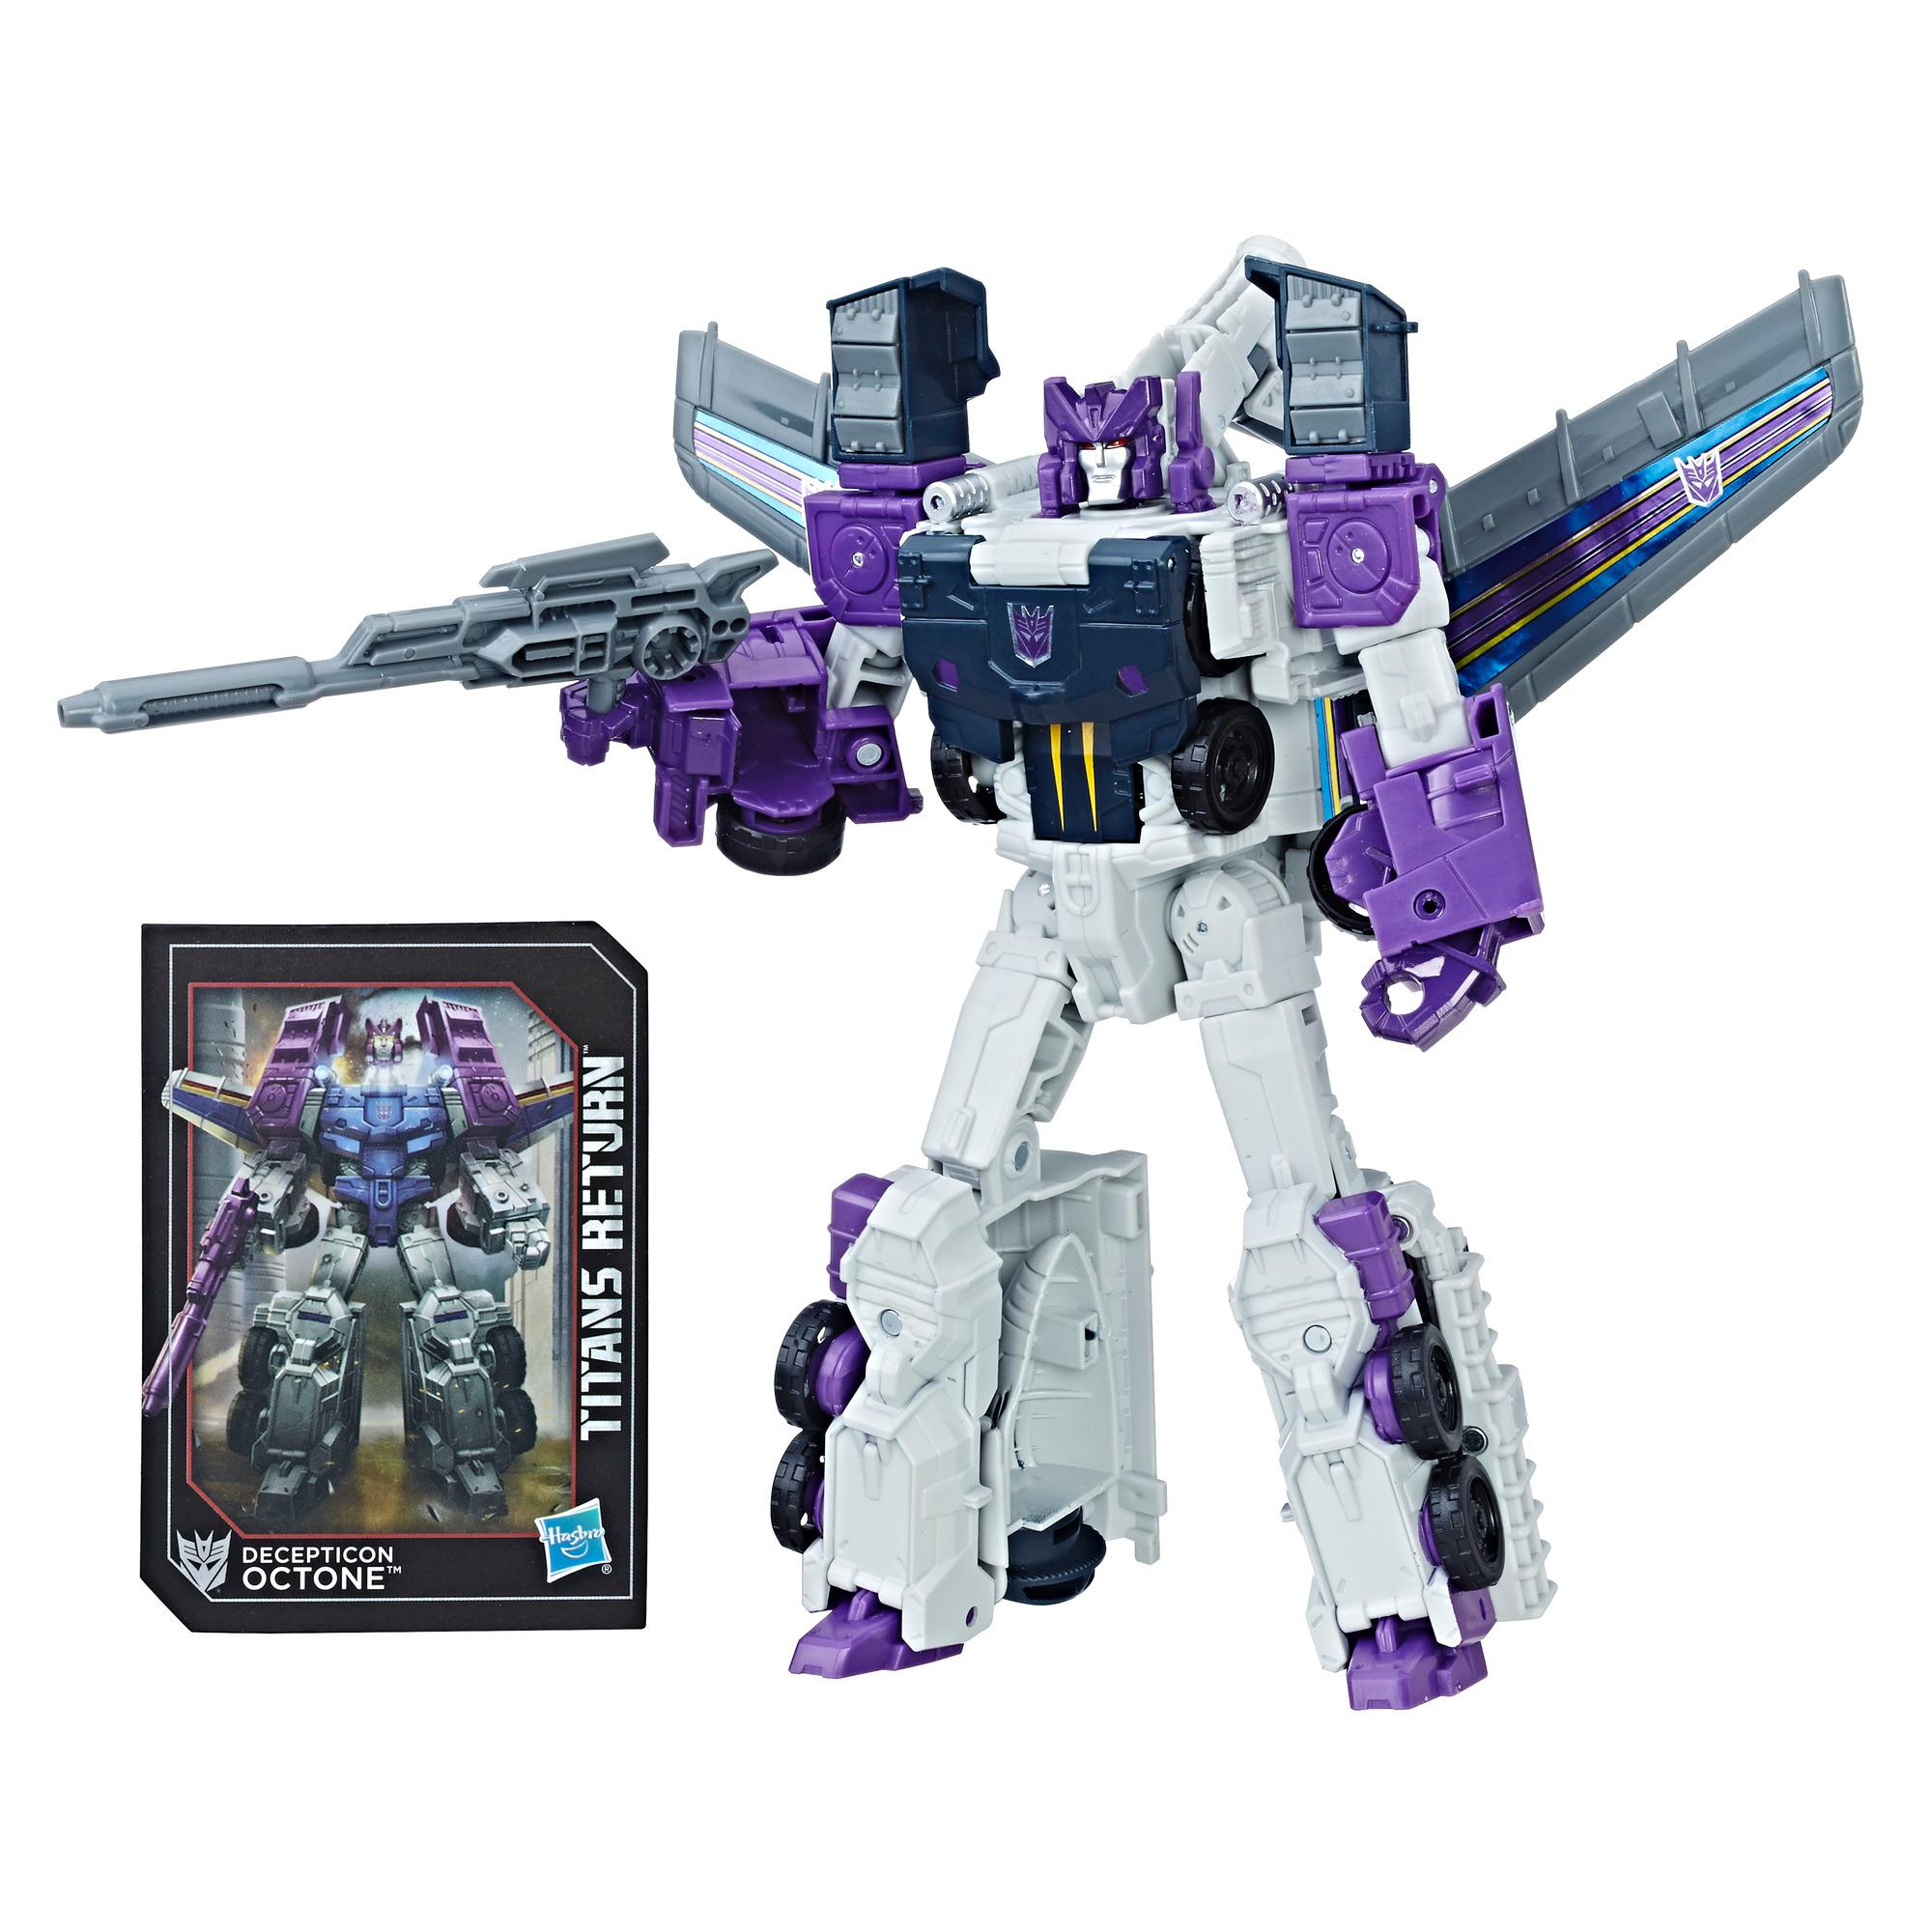 Transformers Generations Titans Return Voyager Decepticon Octone and Murk